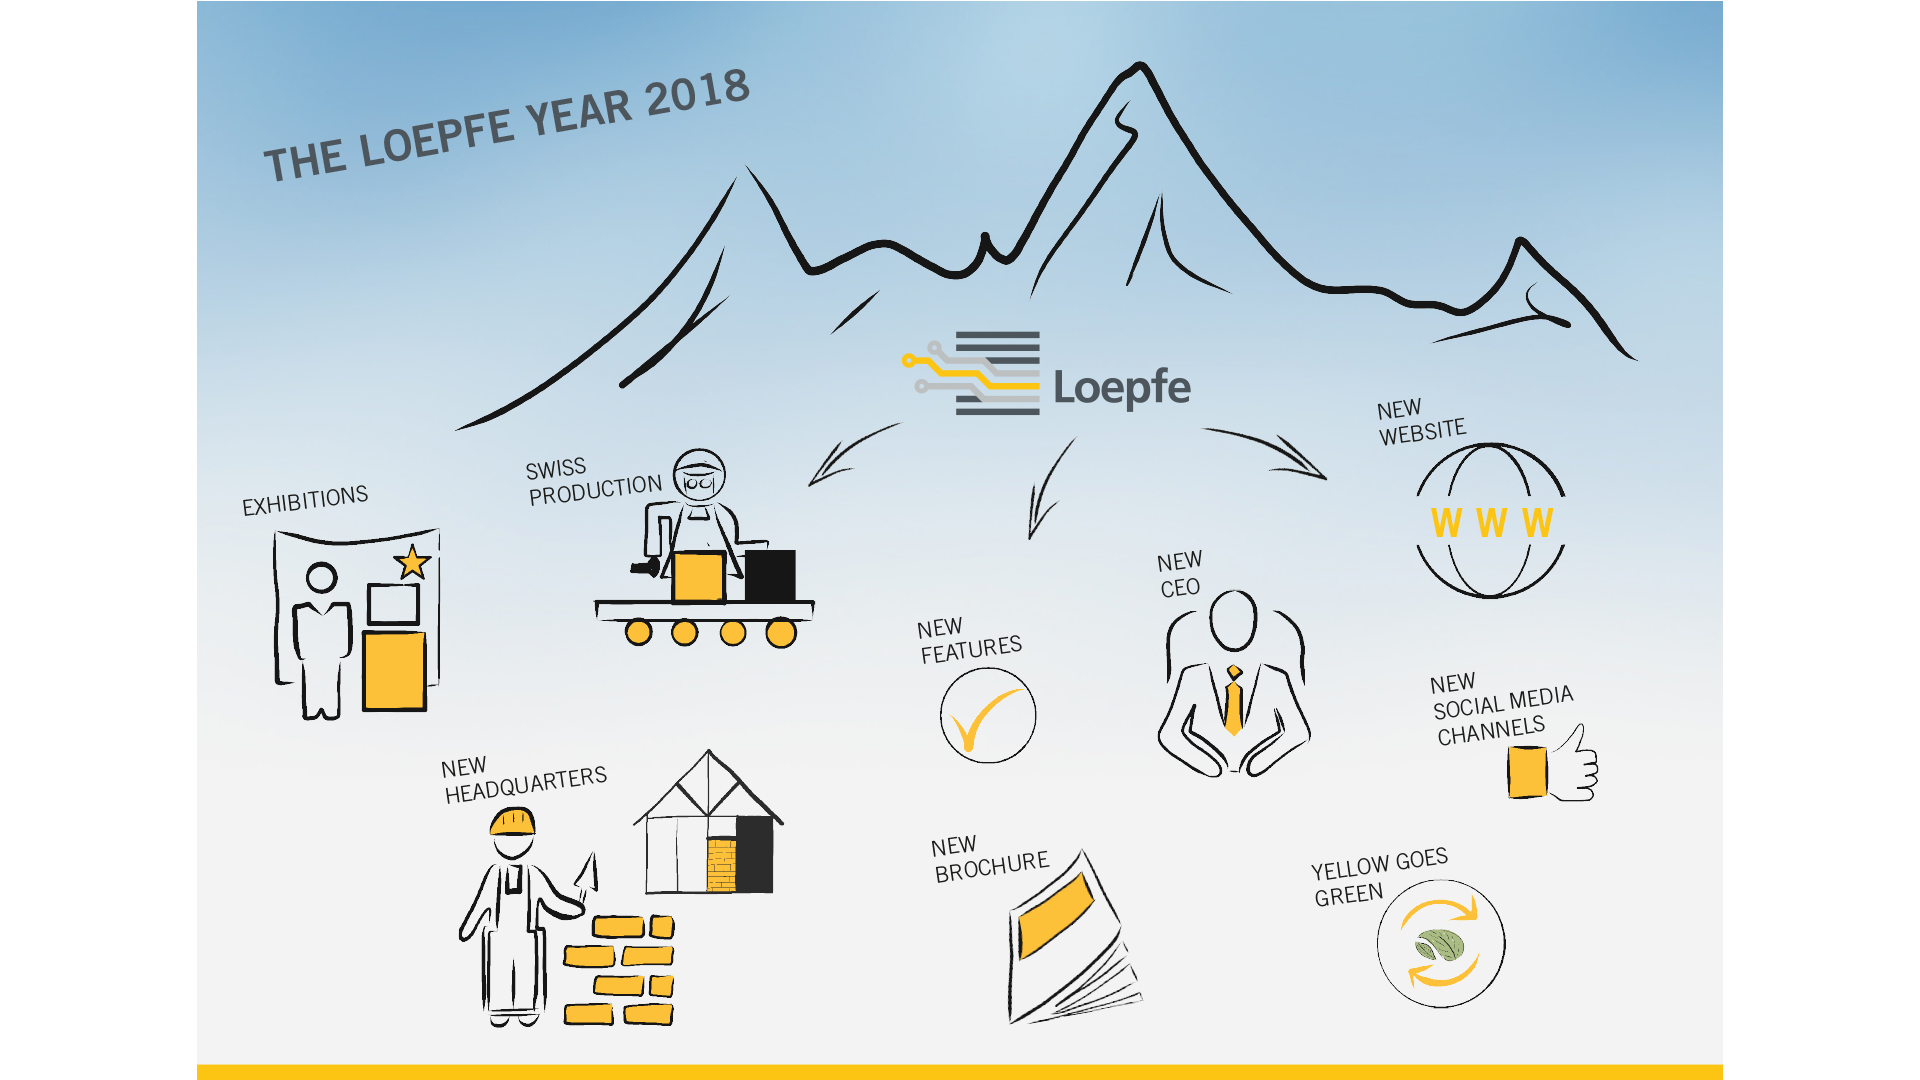 The Loepfe Year 2018